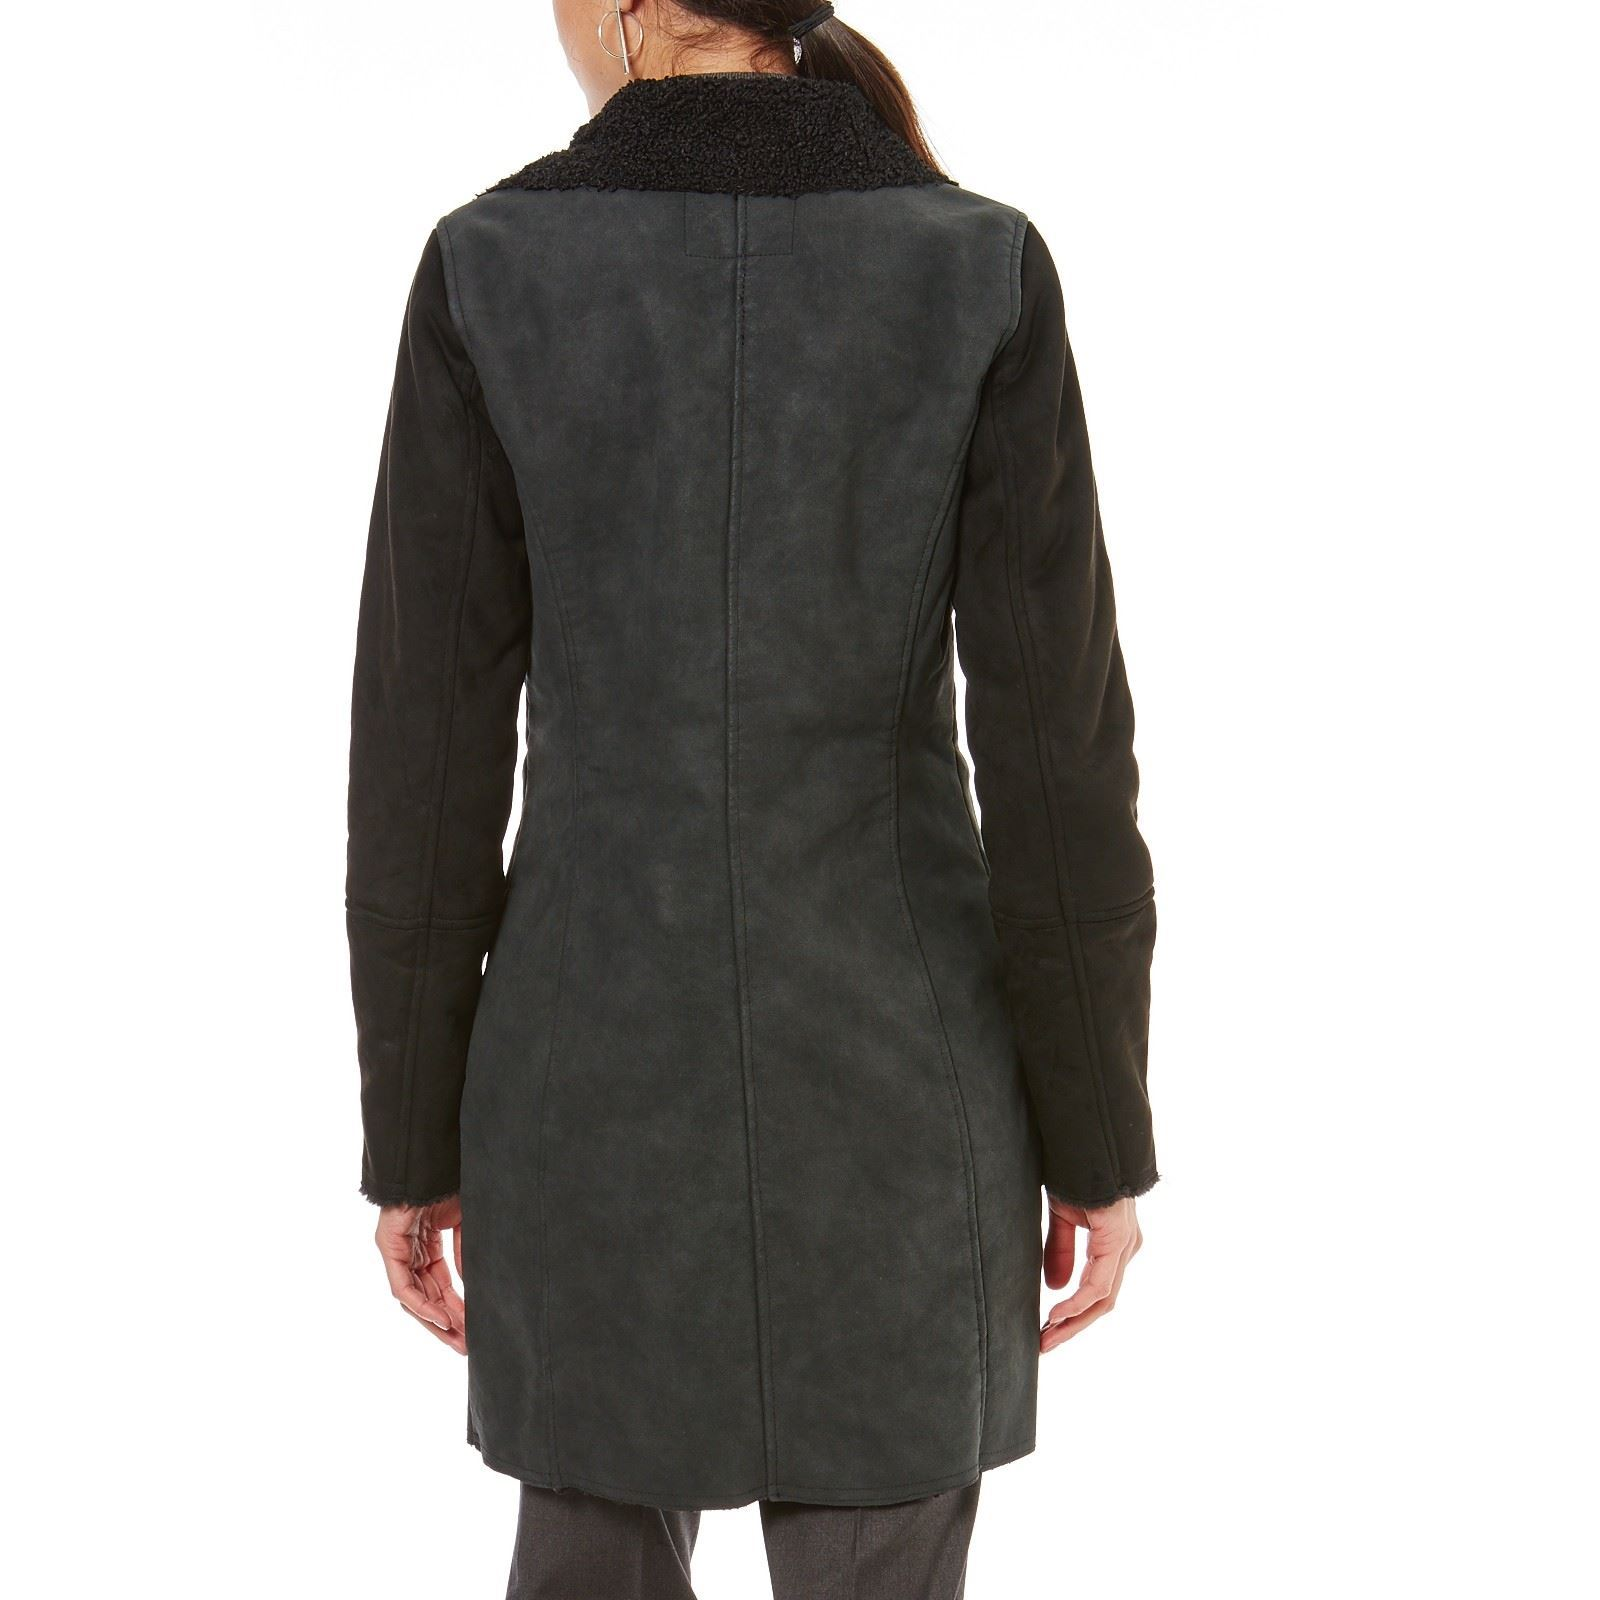 Only Manteau - noir   BrandAlley 25fe2ee17bc3